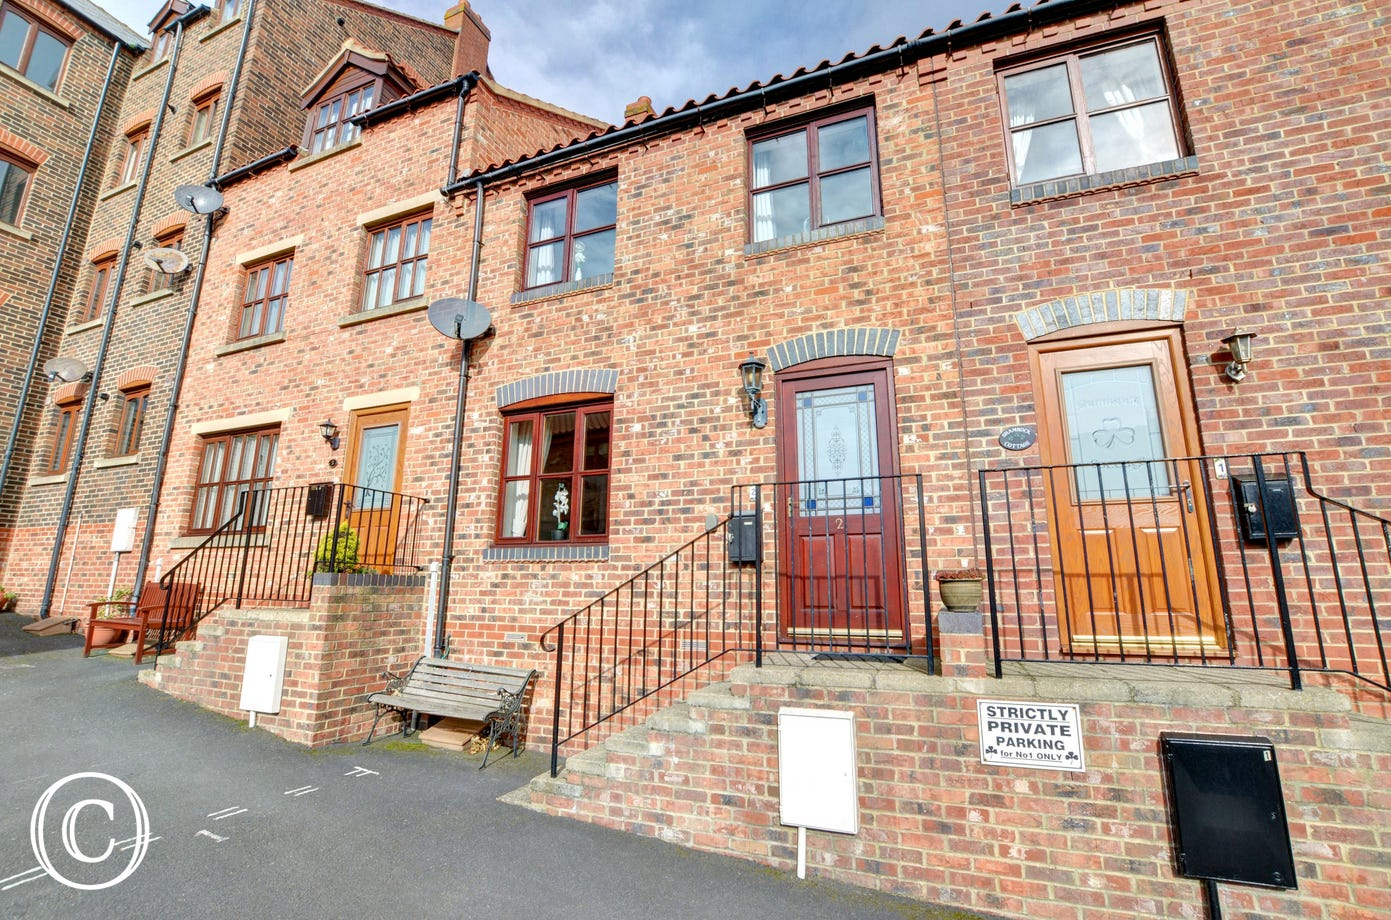 This is a well presented property on a quiet development close to the centre of town.